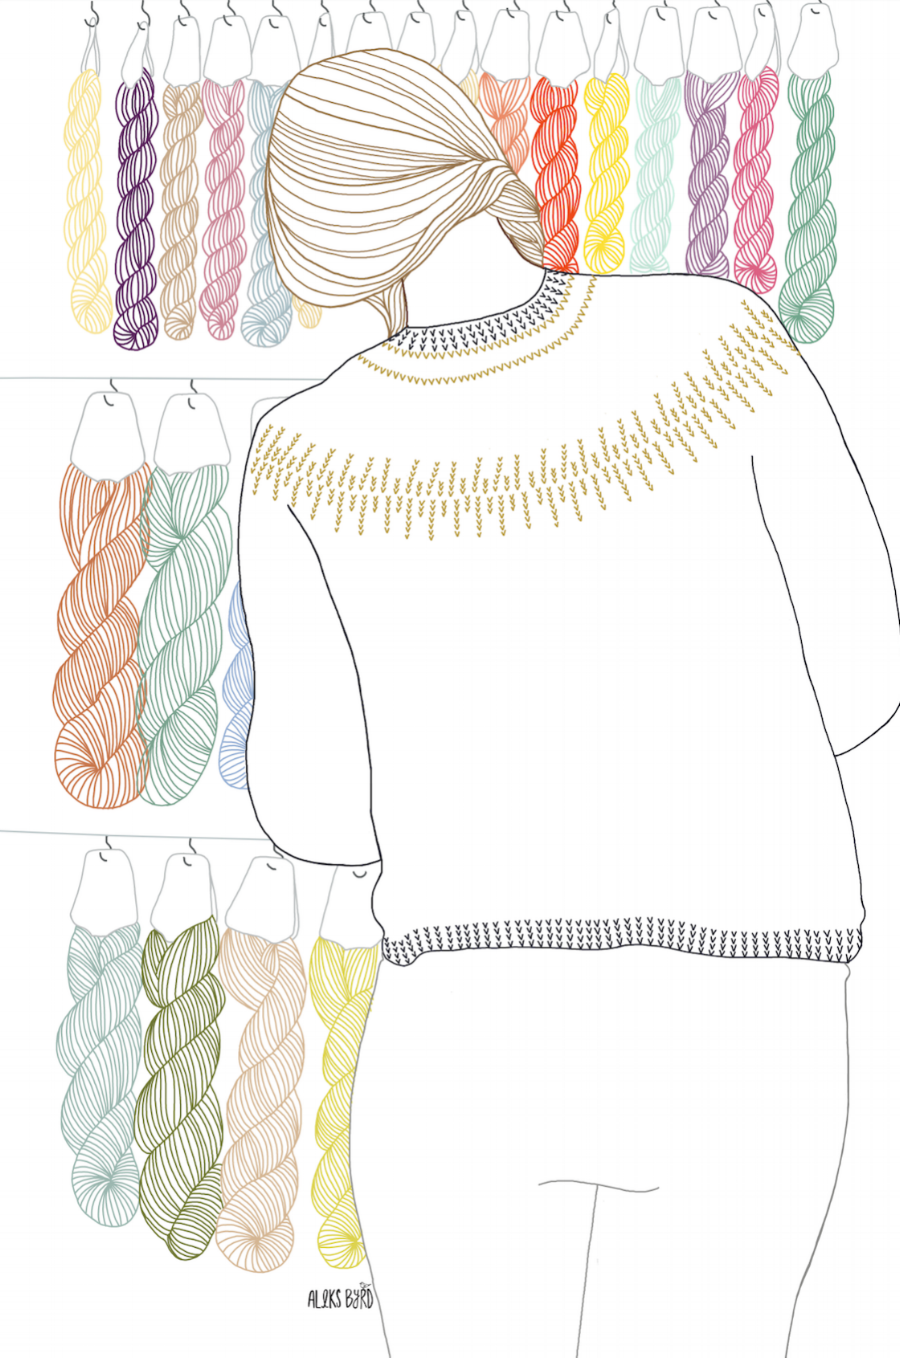 A quick illustration I made of a knitter shopping at The Little Grey Sheep's booth in a lovely yoke sweater.